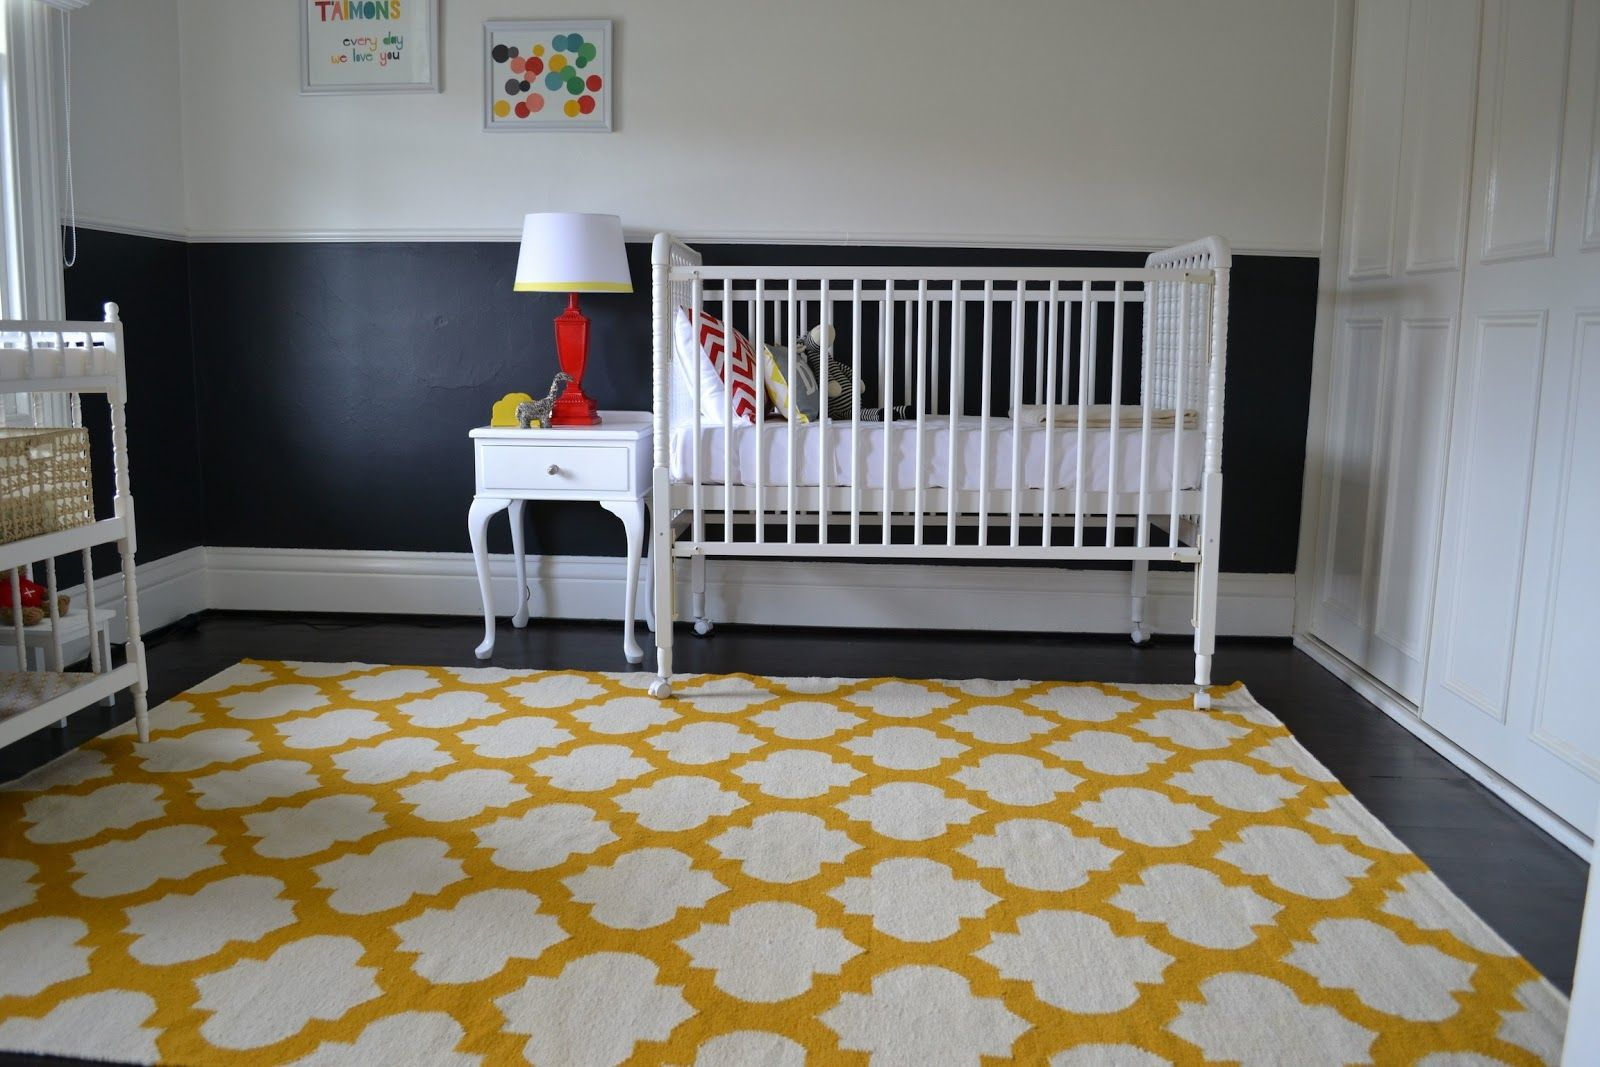 awesome baby nursery design with decorative yellow graphic carpet - Baby Boy Room Rugs